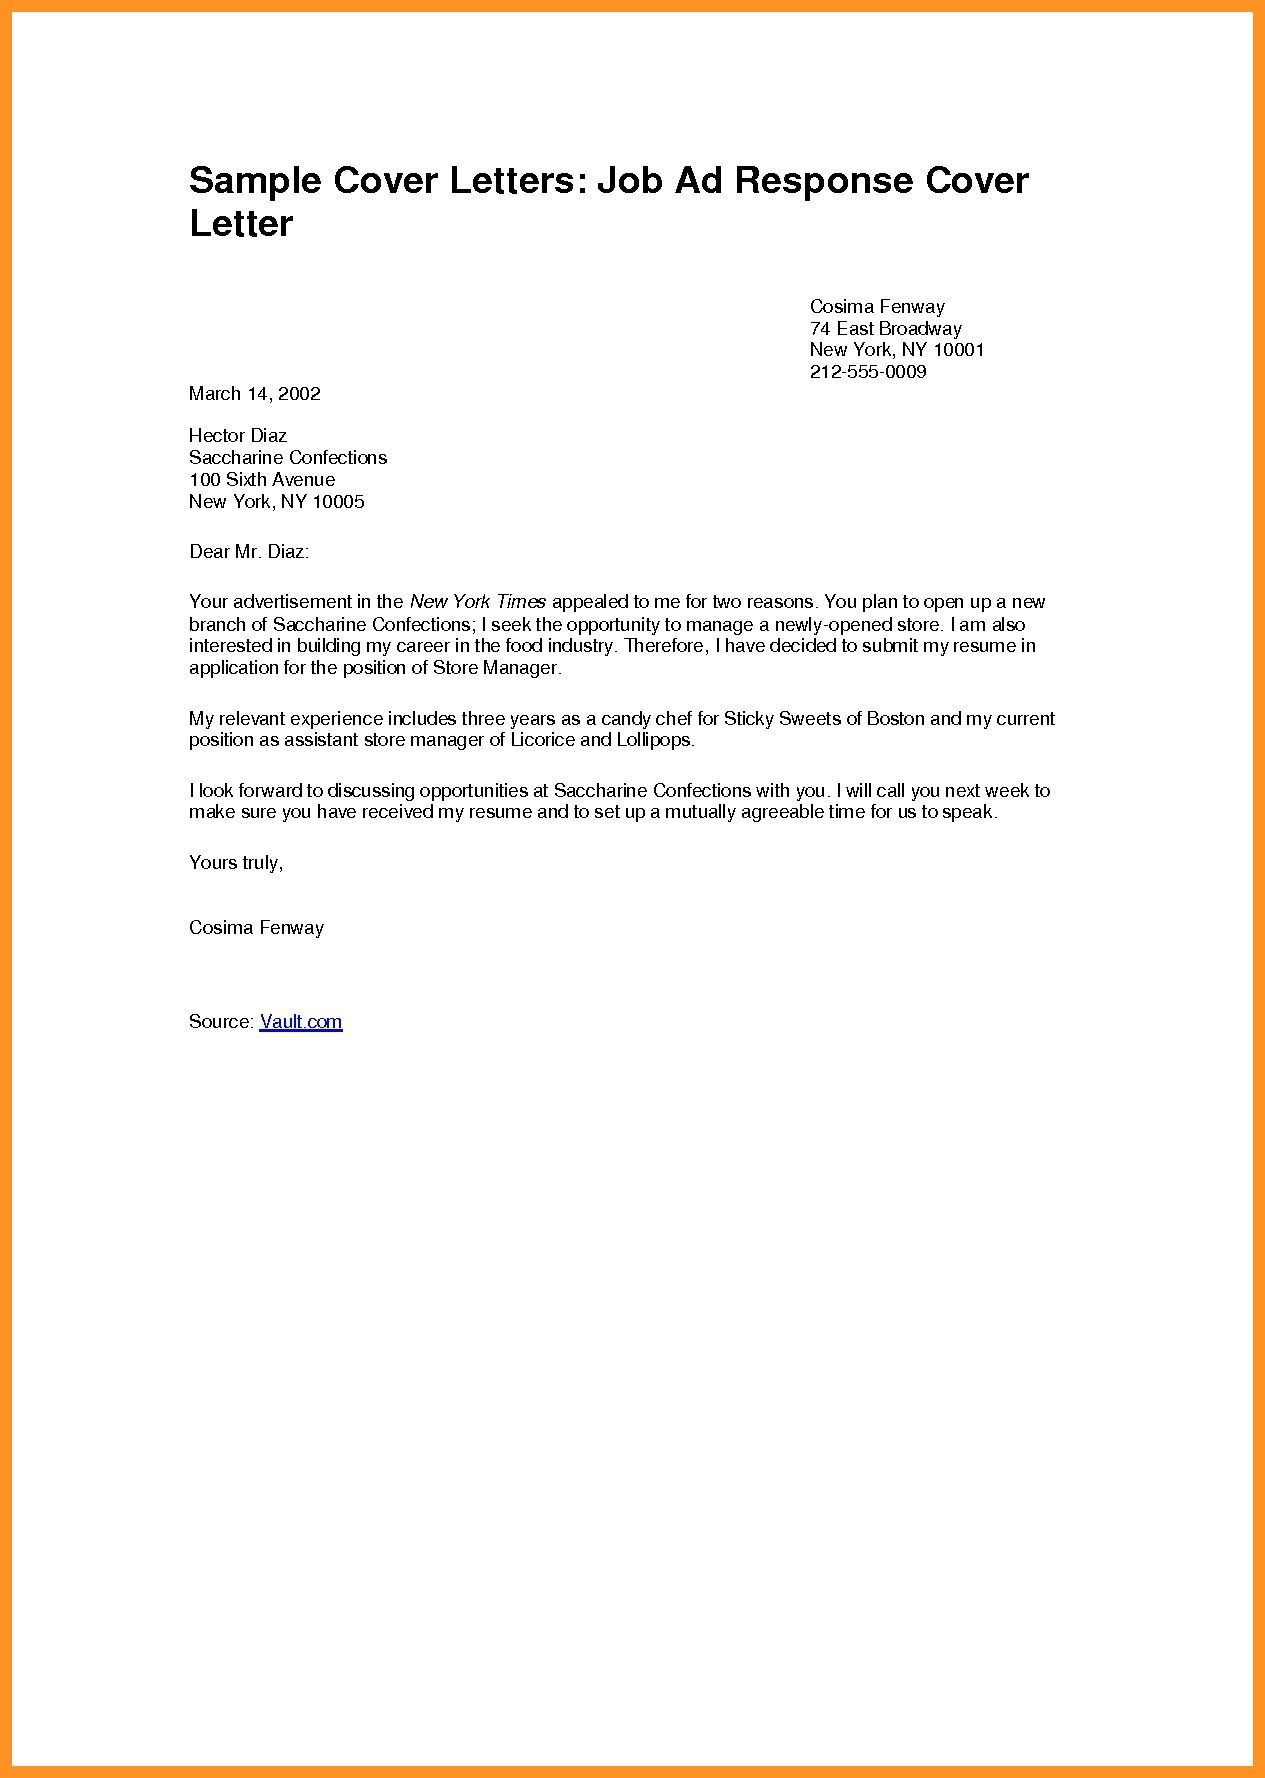 Sample Cover Letter Template from www.addictionary.org